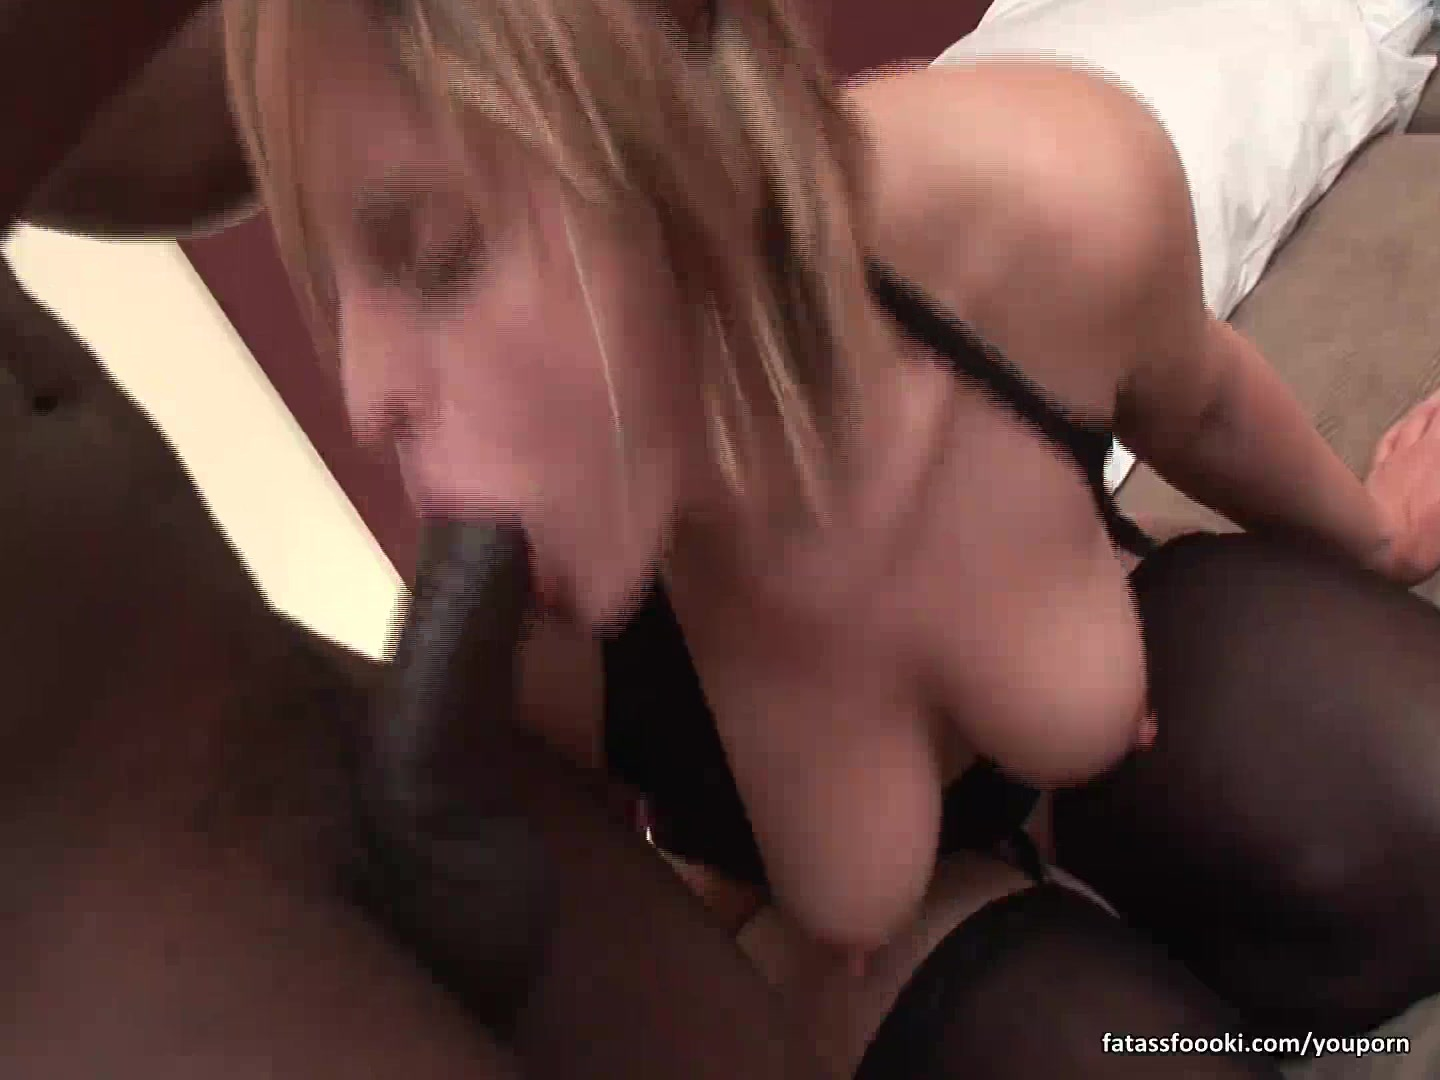 Slutty blonde rides monster bl